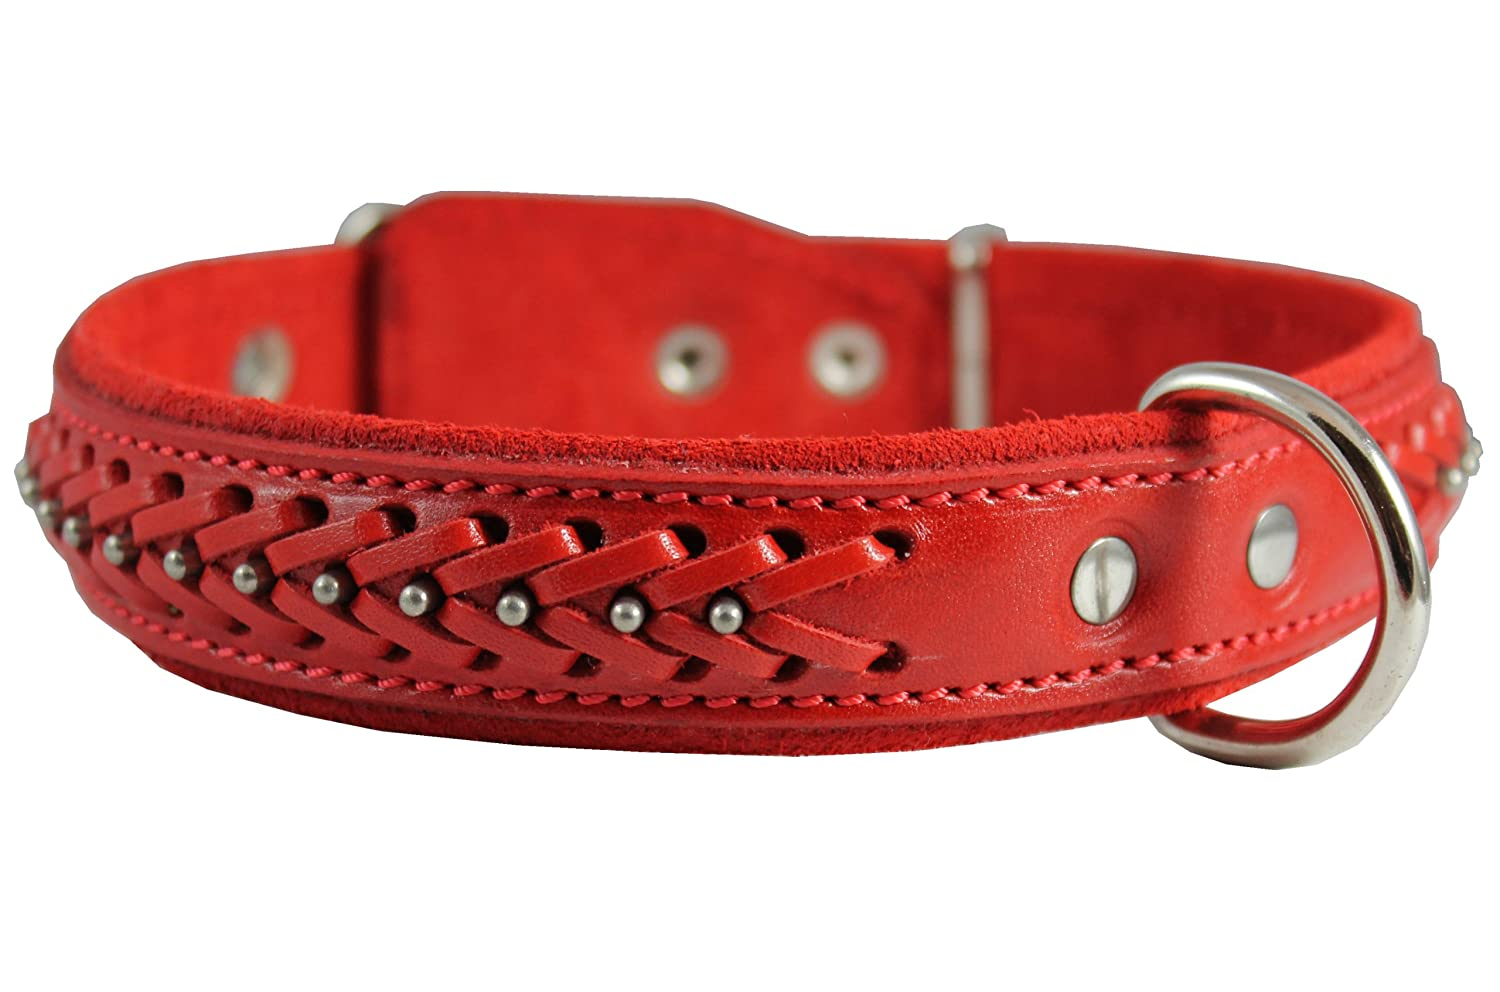 High Quality Genuine Leather Braided Studded Dog Collar, Red 1.25  Wide. Fits 16 -20.5  Neck.